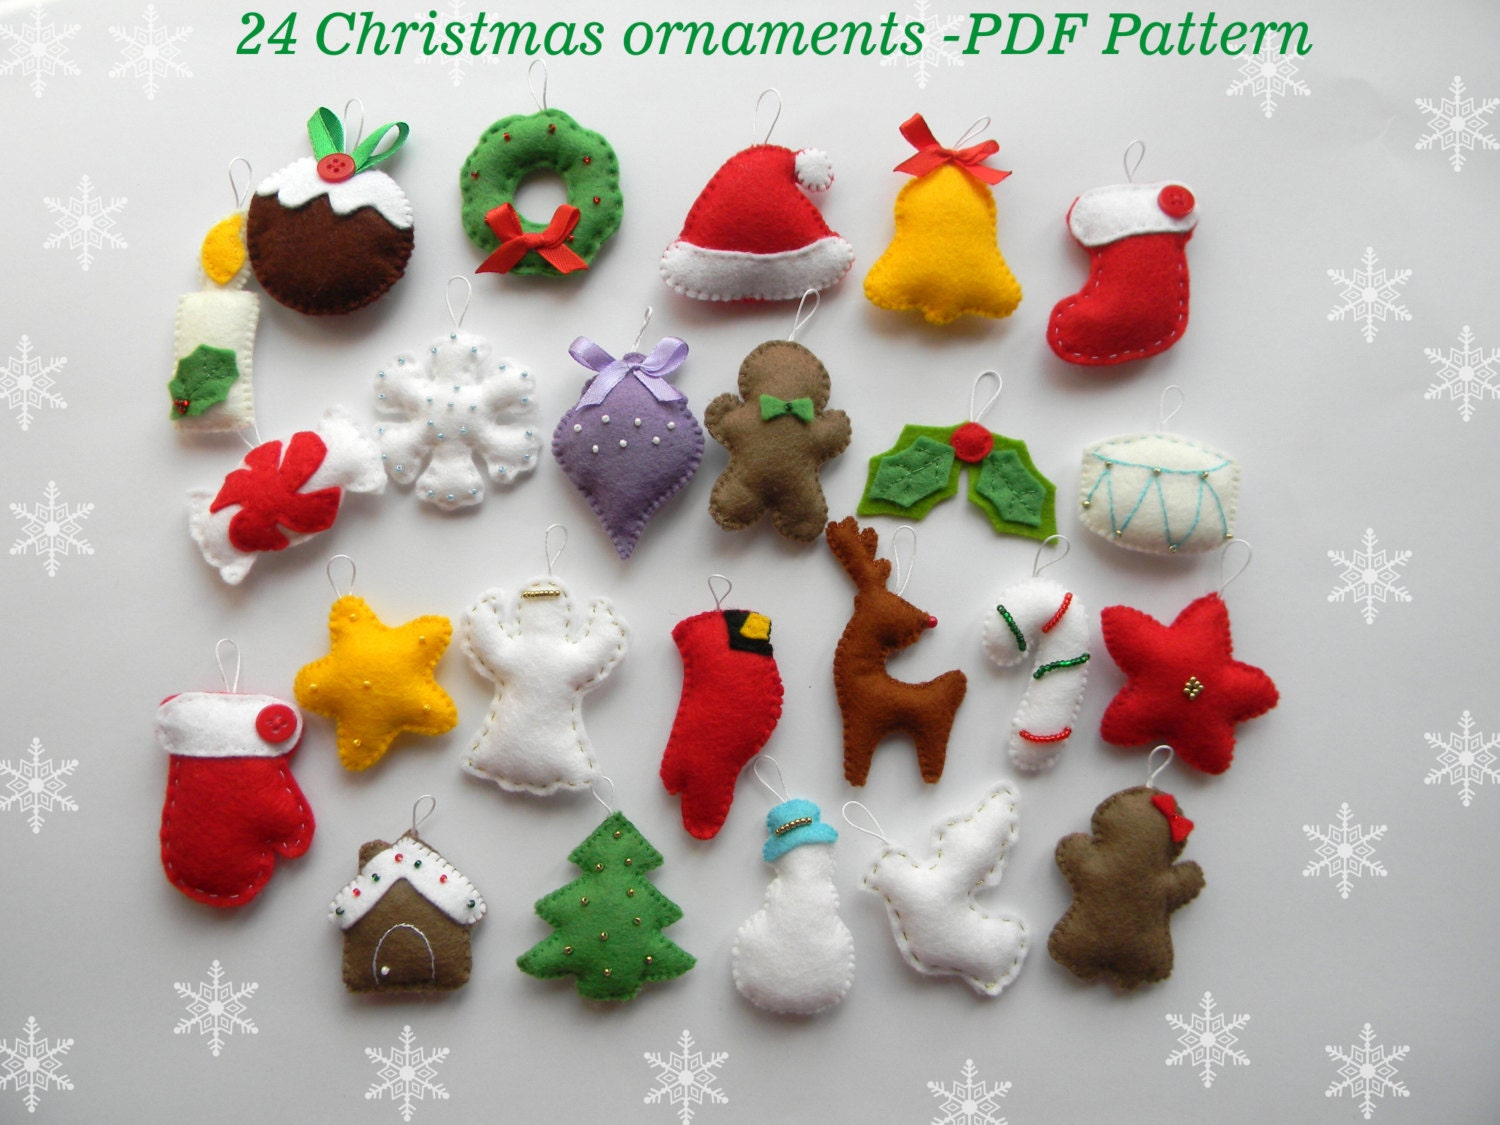 pdf pattern 24 advent ornaments pattren christmas ormaments etsy - Felt Christmas Ornaments